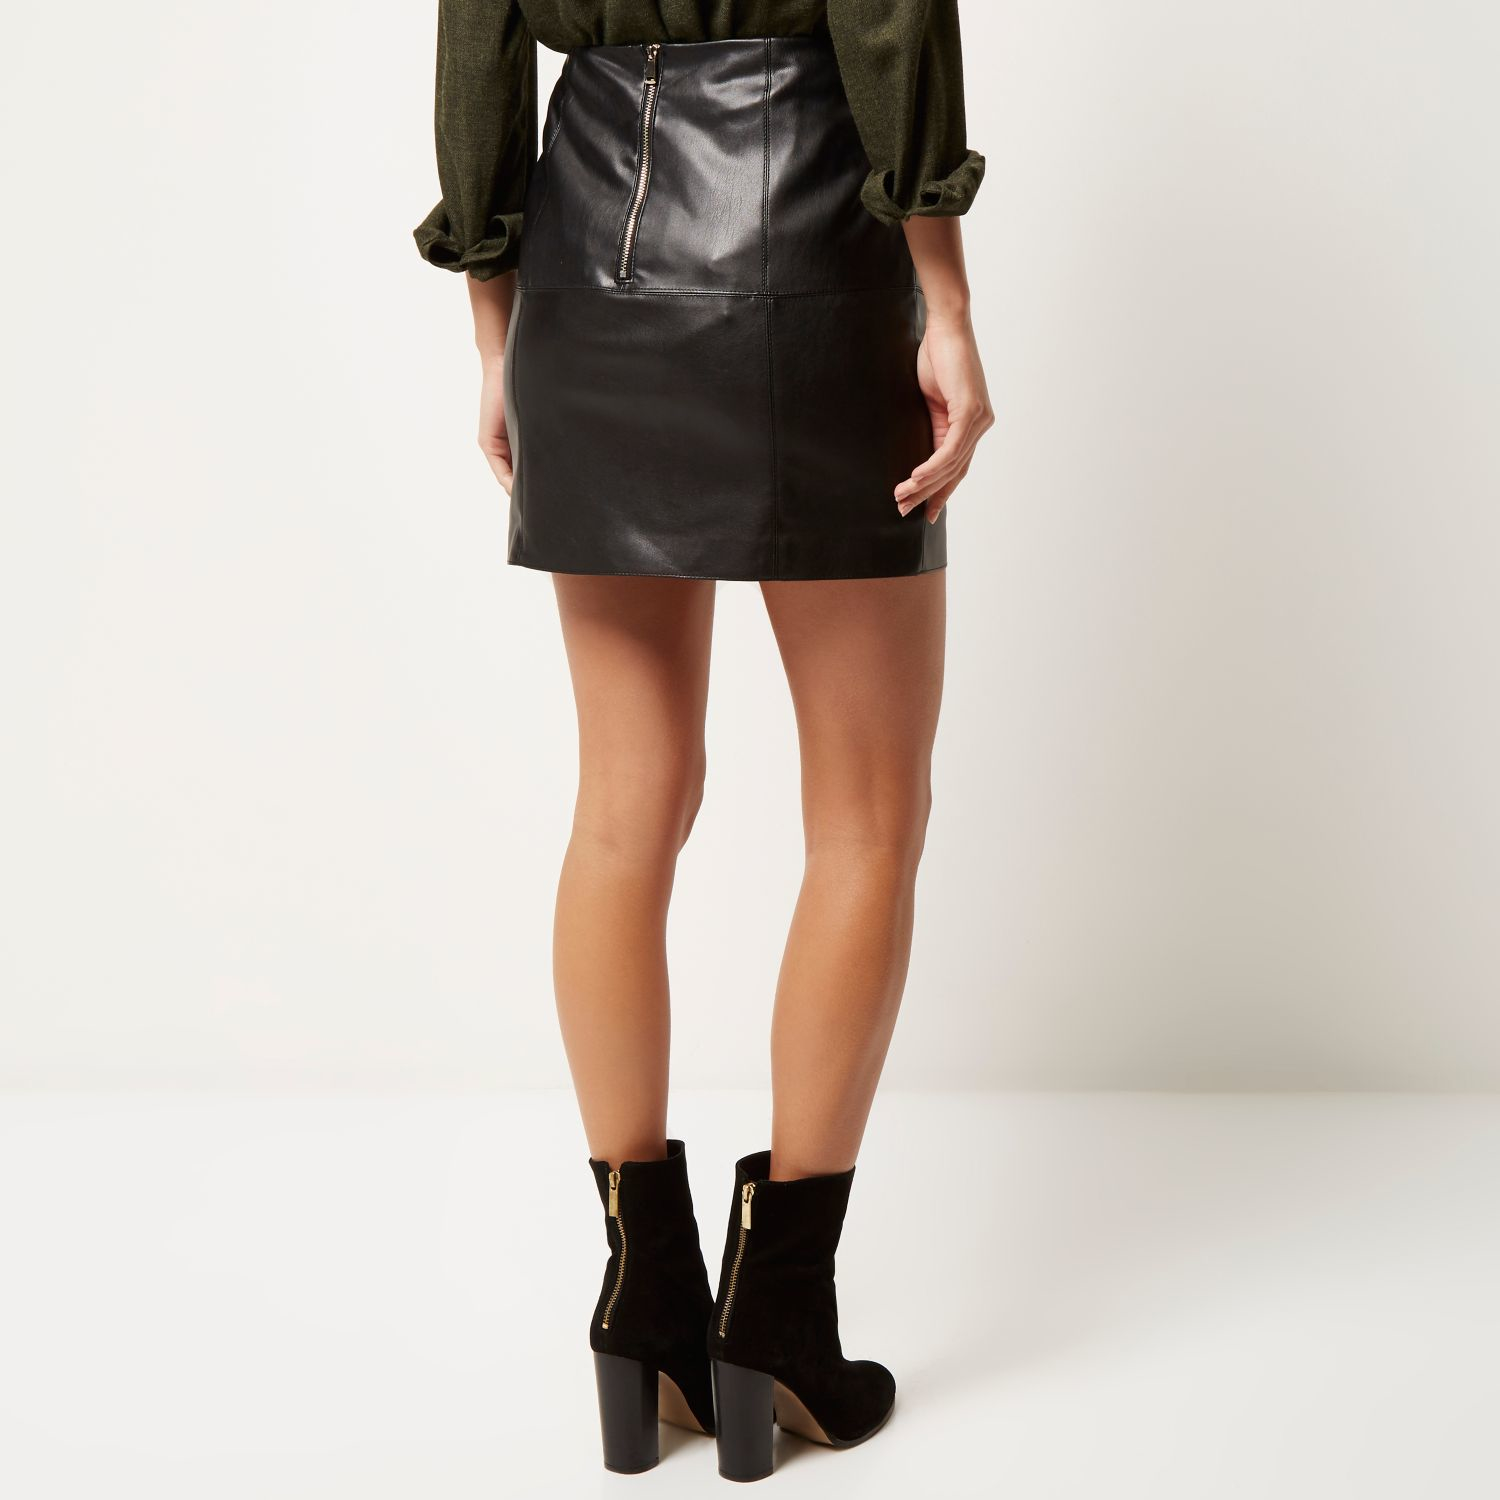 Black Leather Look Mini Skirt - Dress Ala